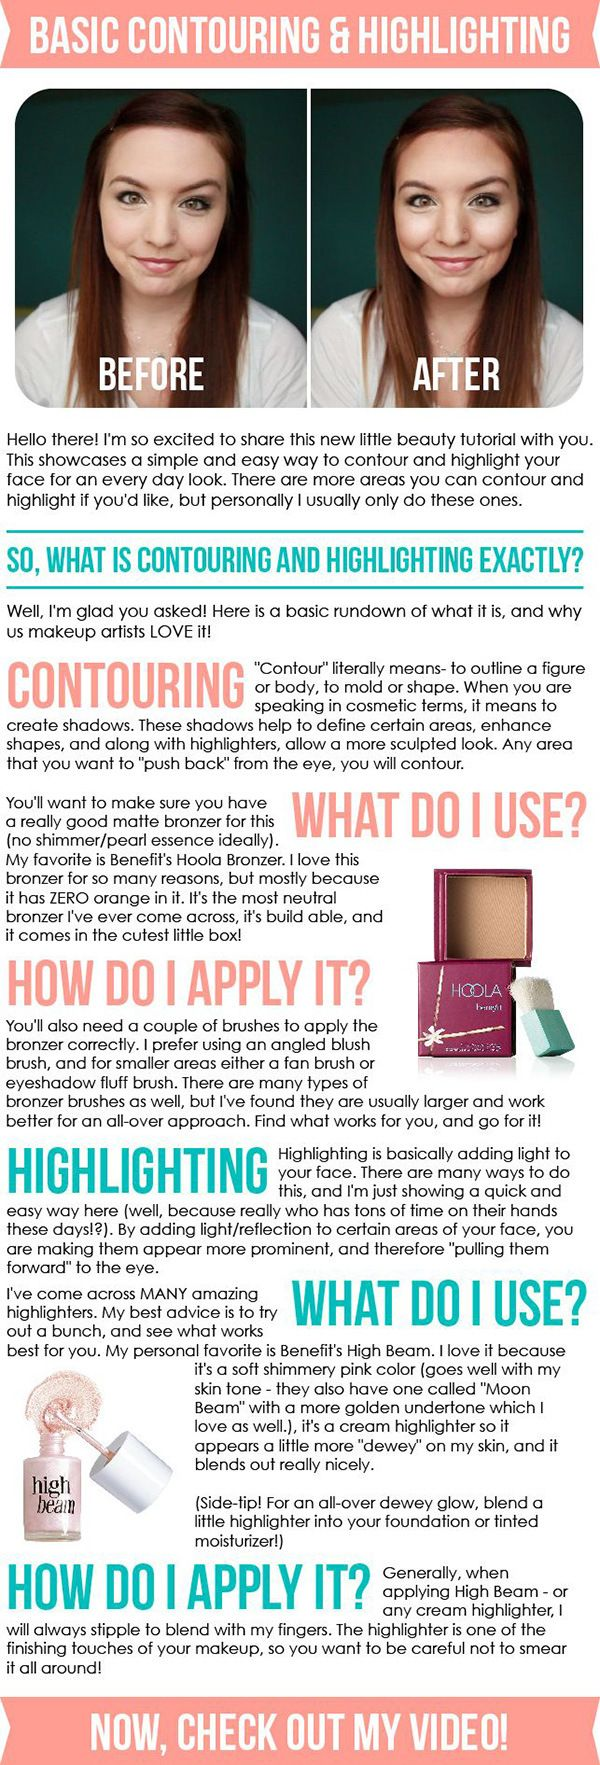 highlighting and contouring tips | 20 Highlighting and Contouring Hacks, Tips and Tricks That Will Change Your Life http://www.jexshop.com/